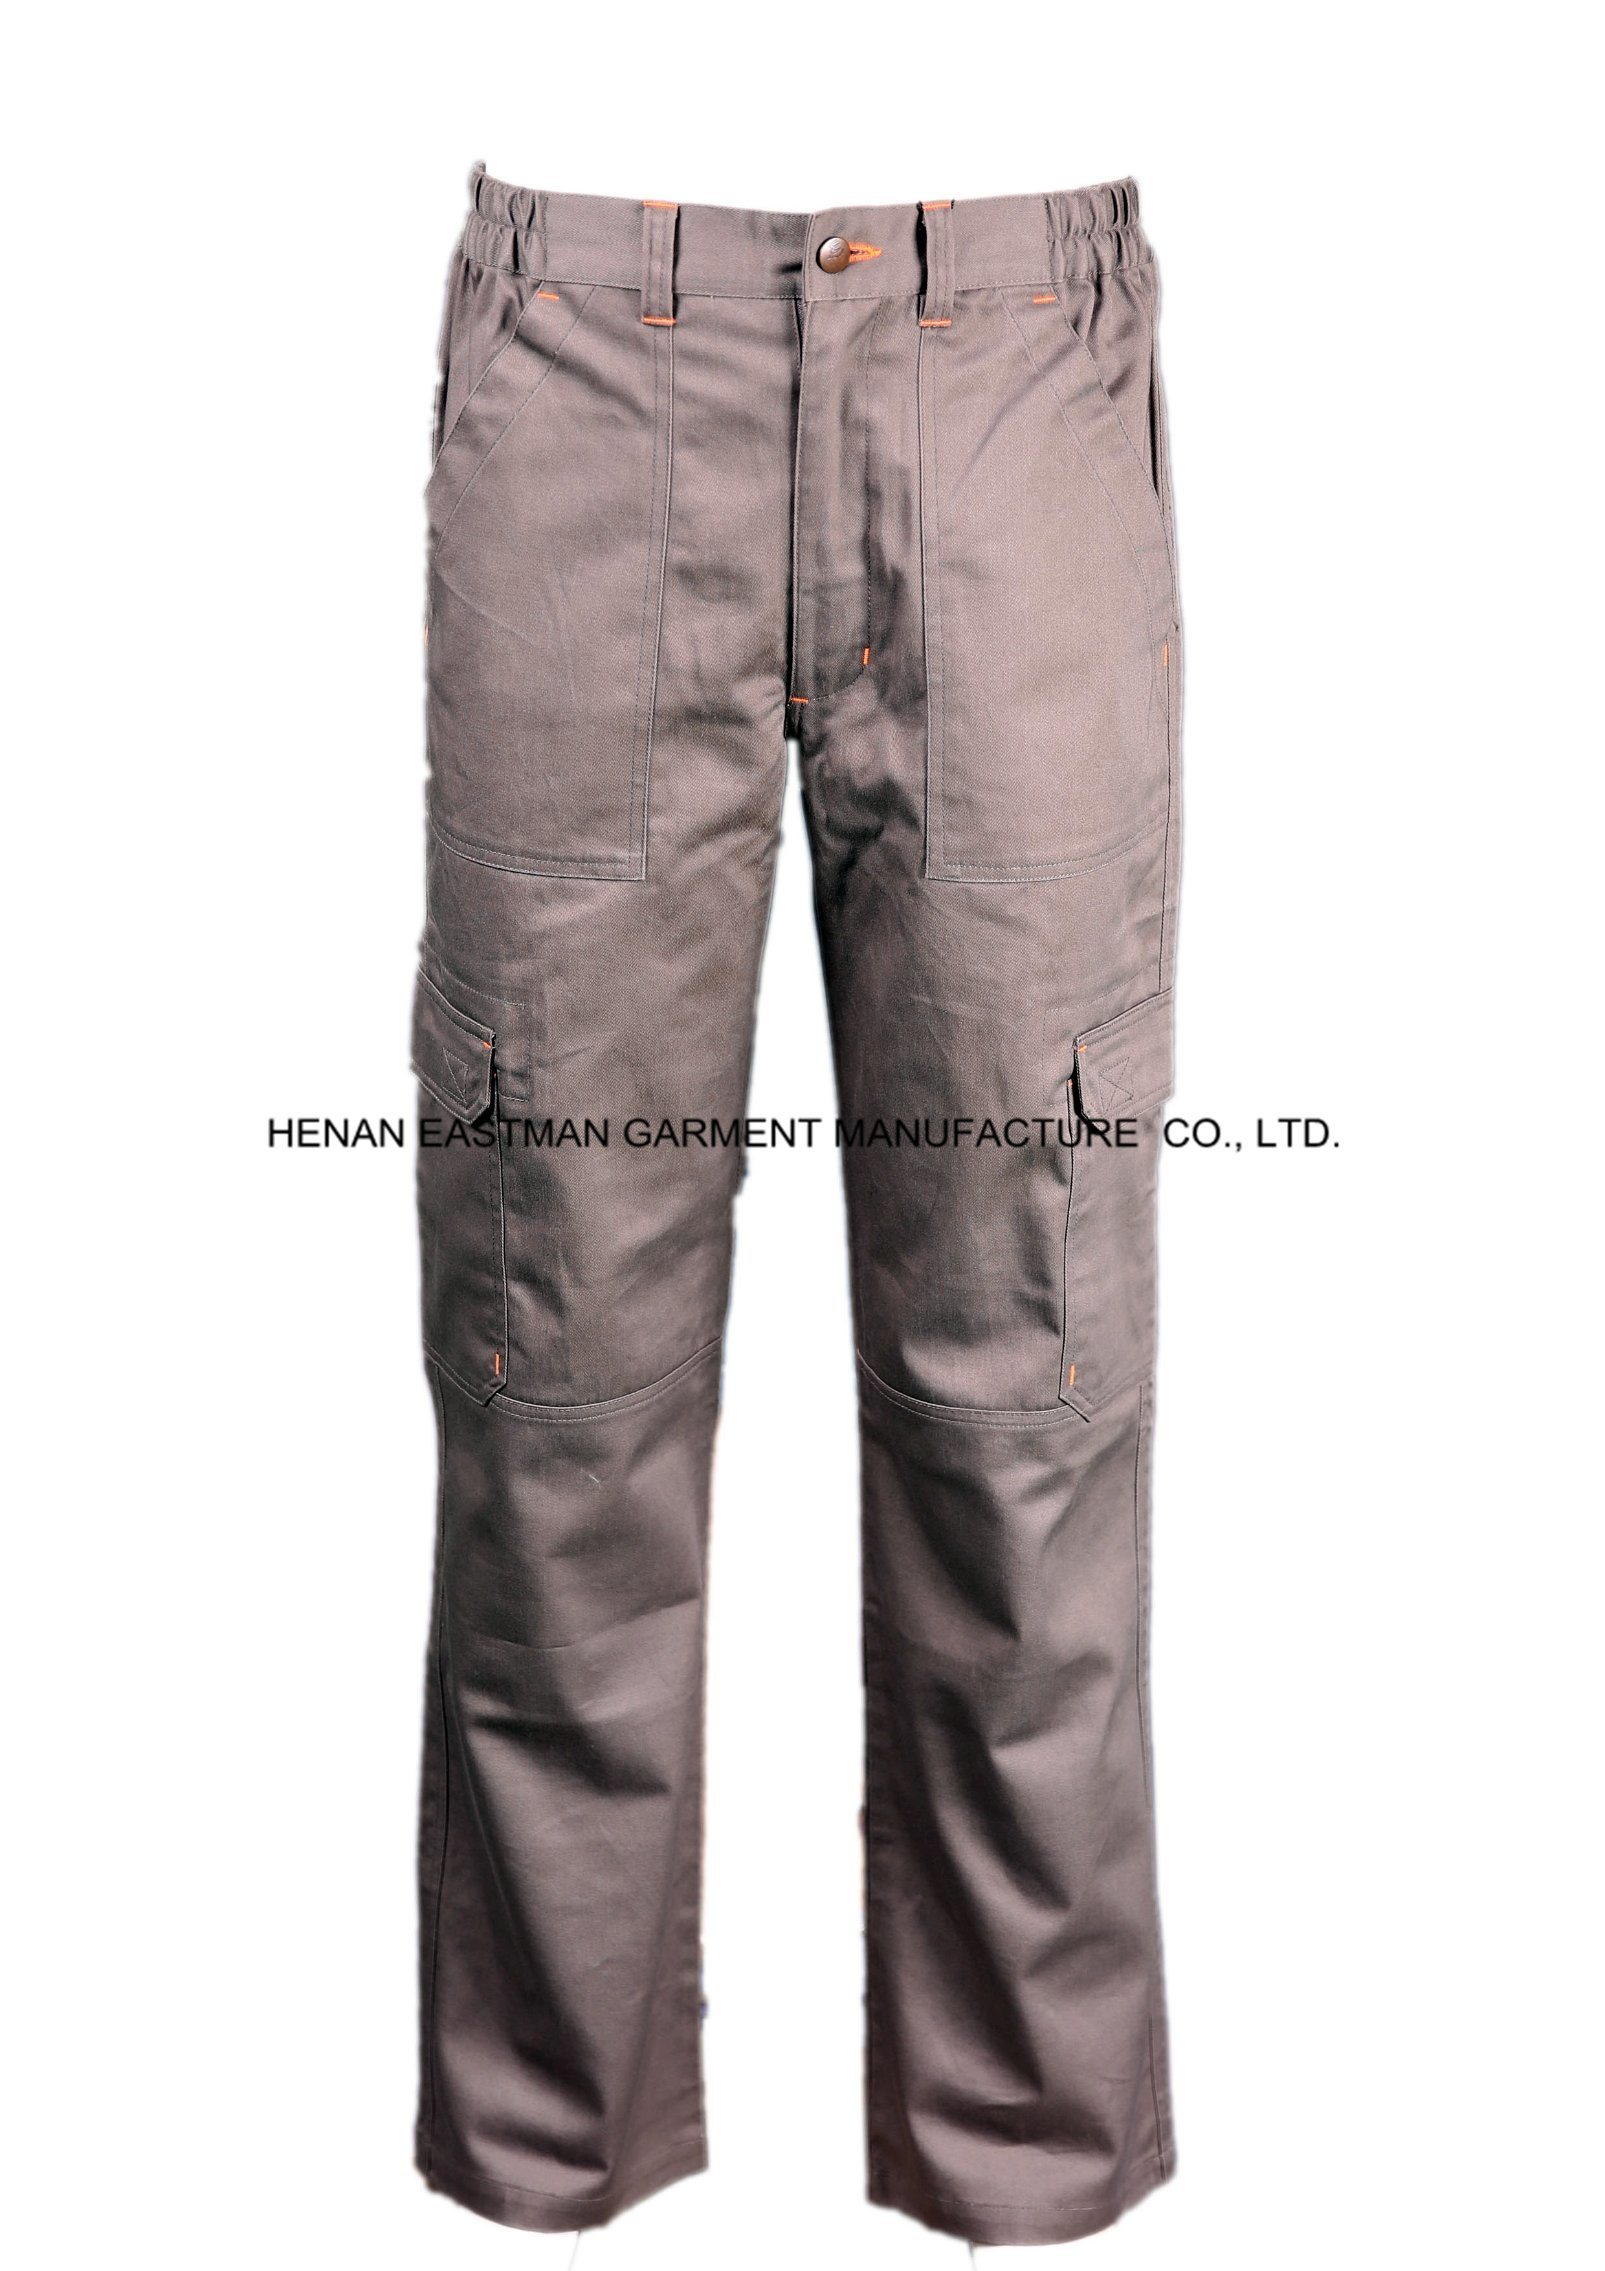 Fr 99%Cotton /1% Carbon Fibres Pants for Security Field